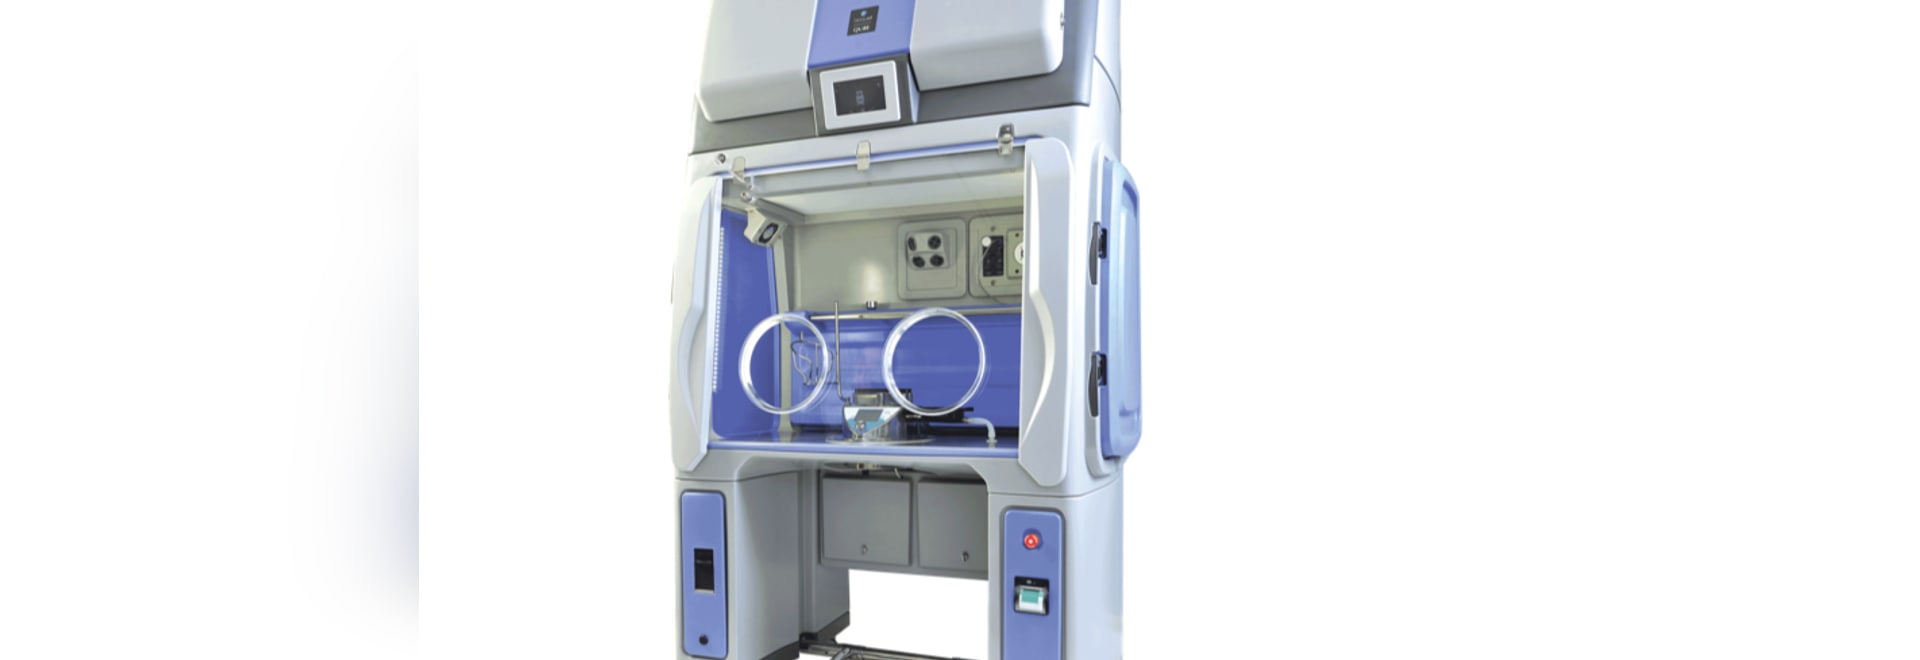 Aseptic Workstation Hits 200th Milestone